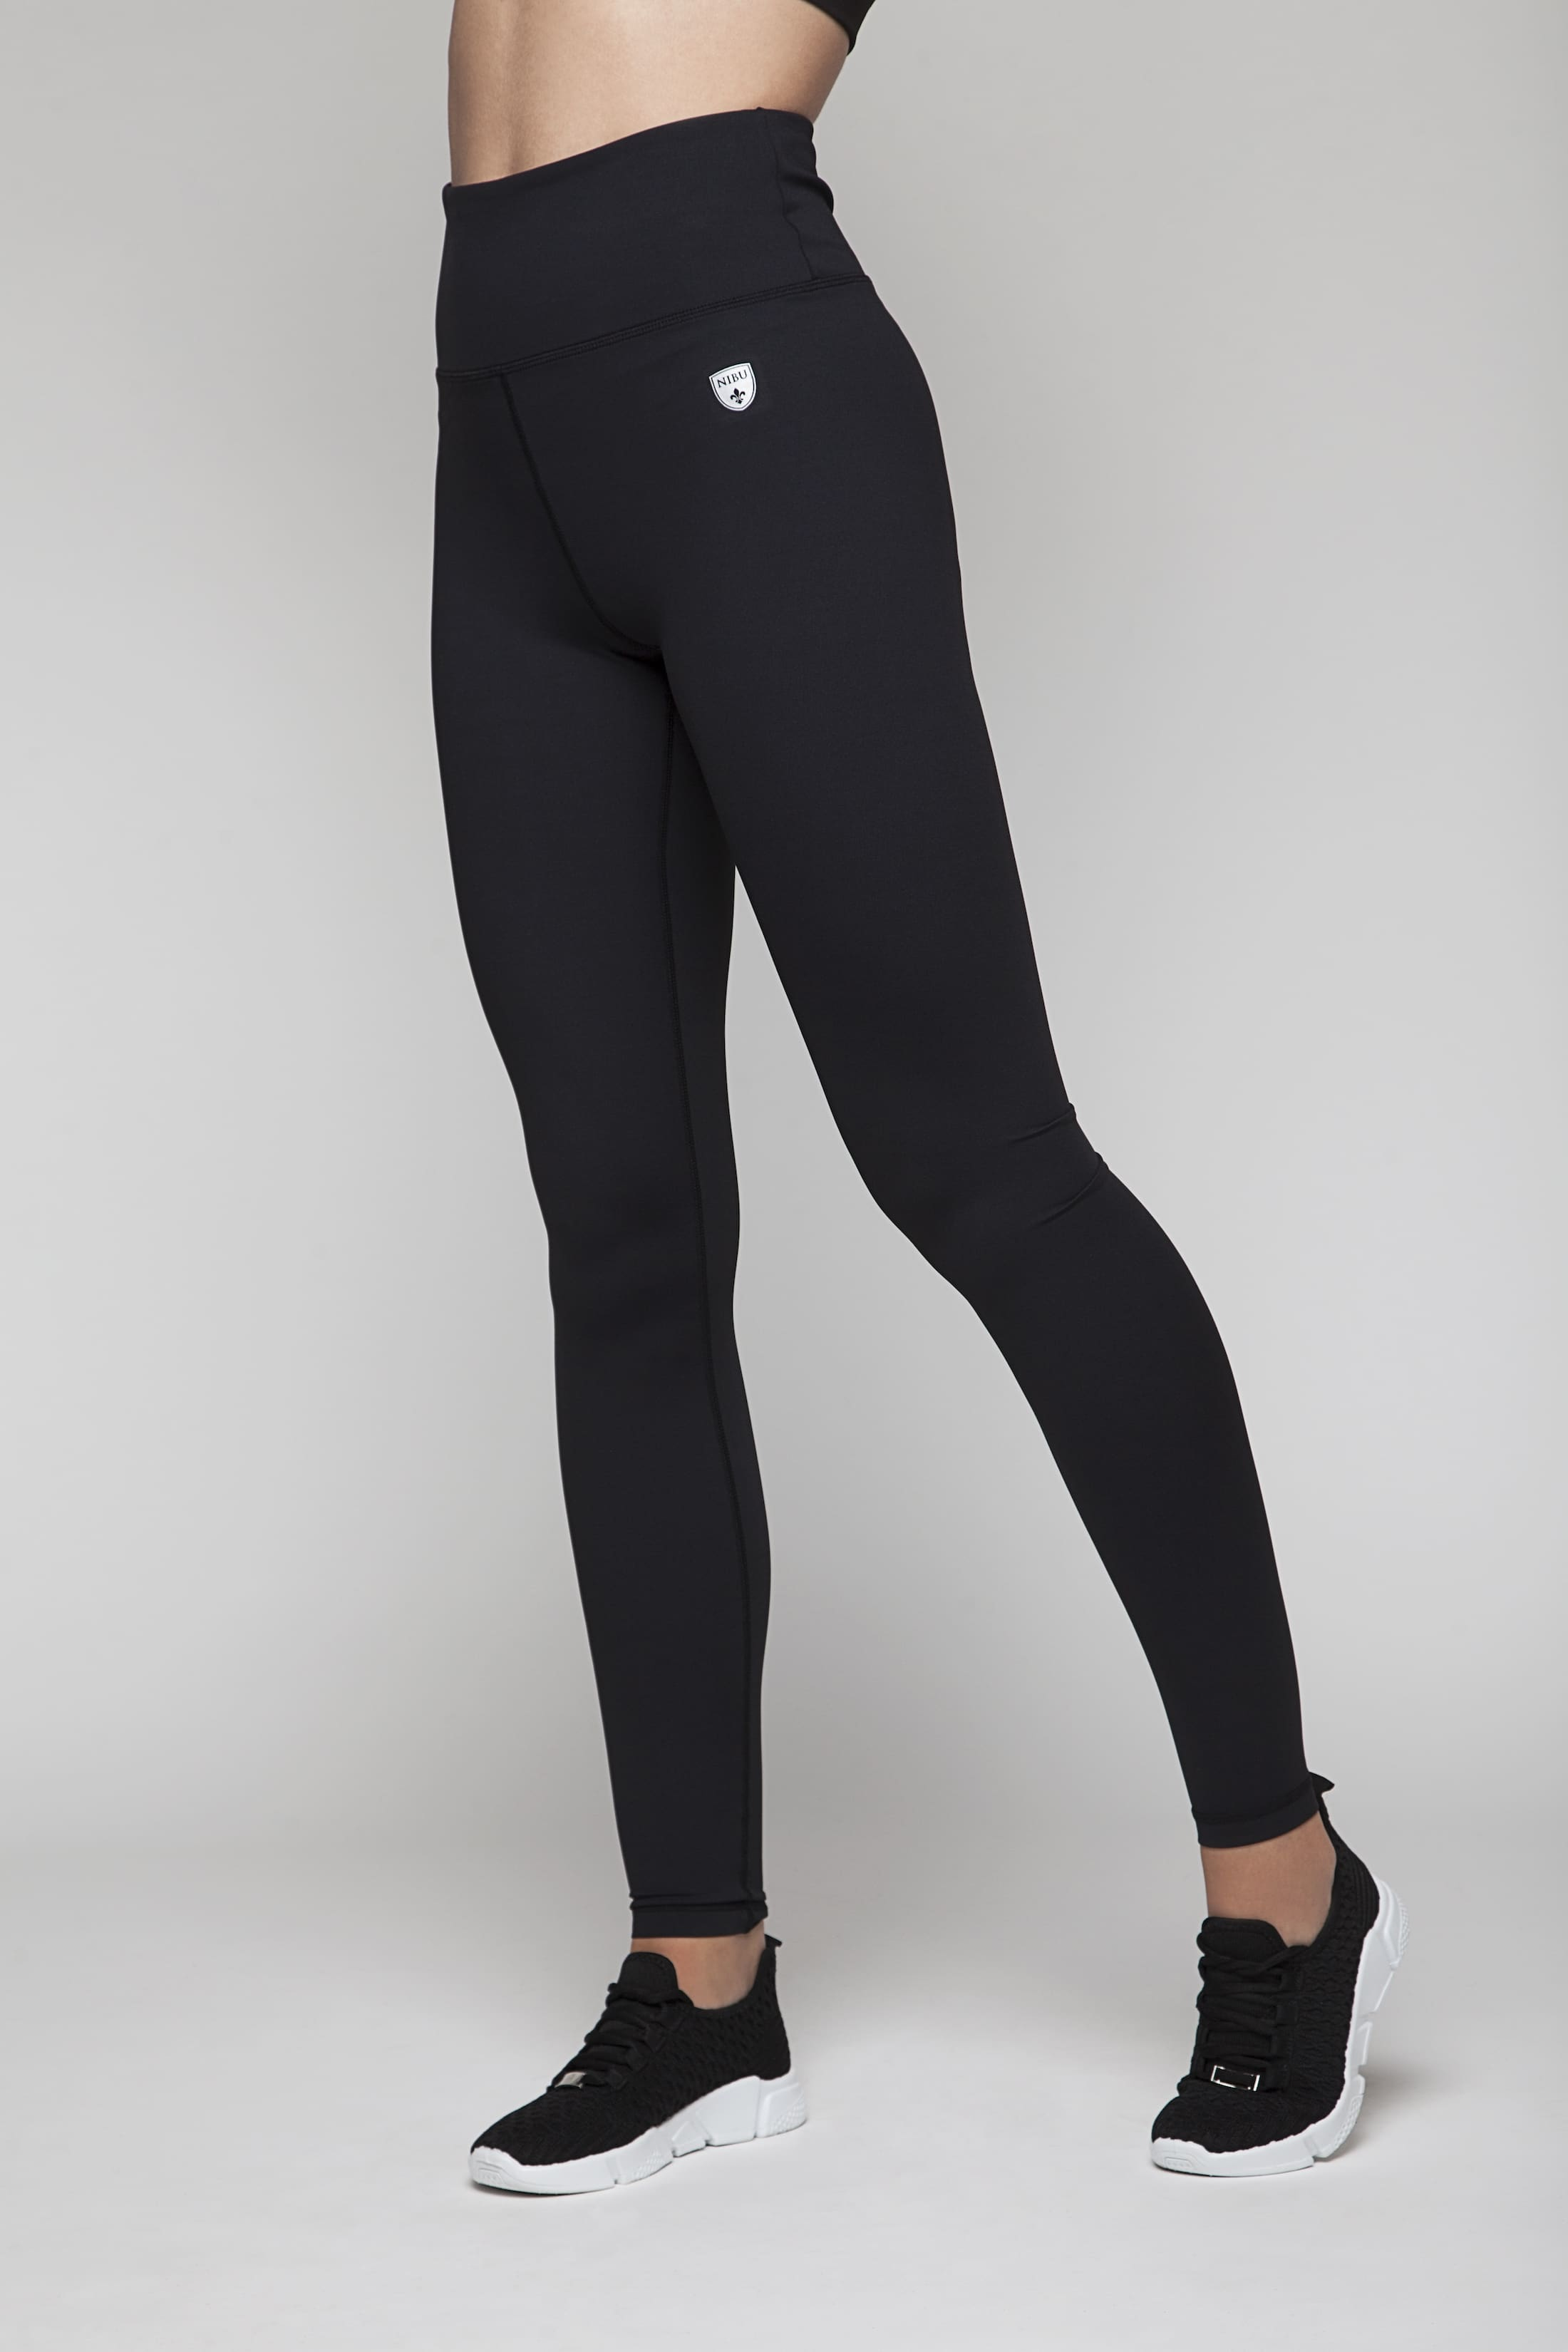 Soft tights with high waist (squat safe)